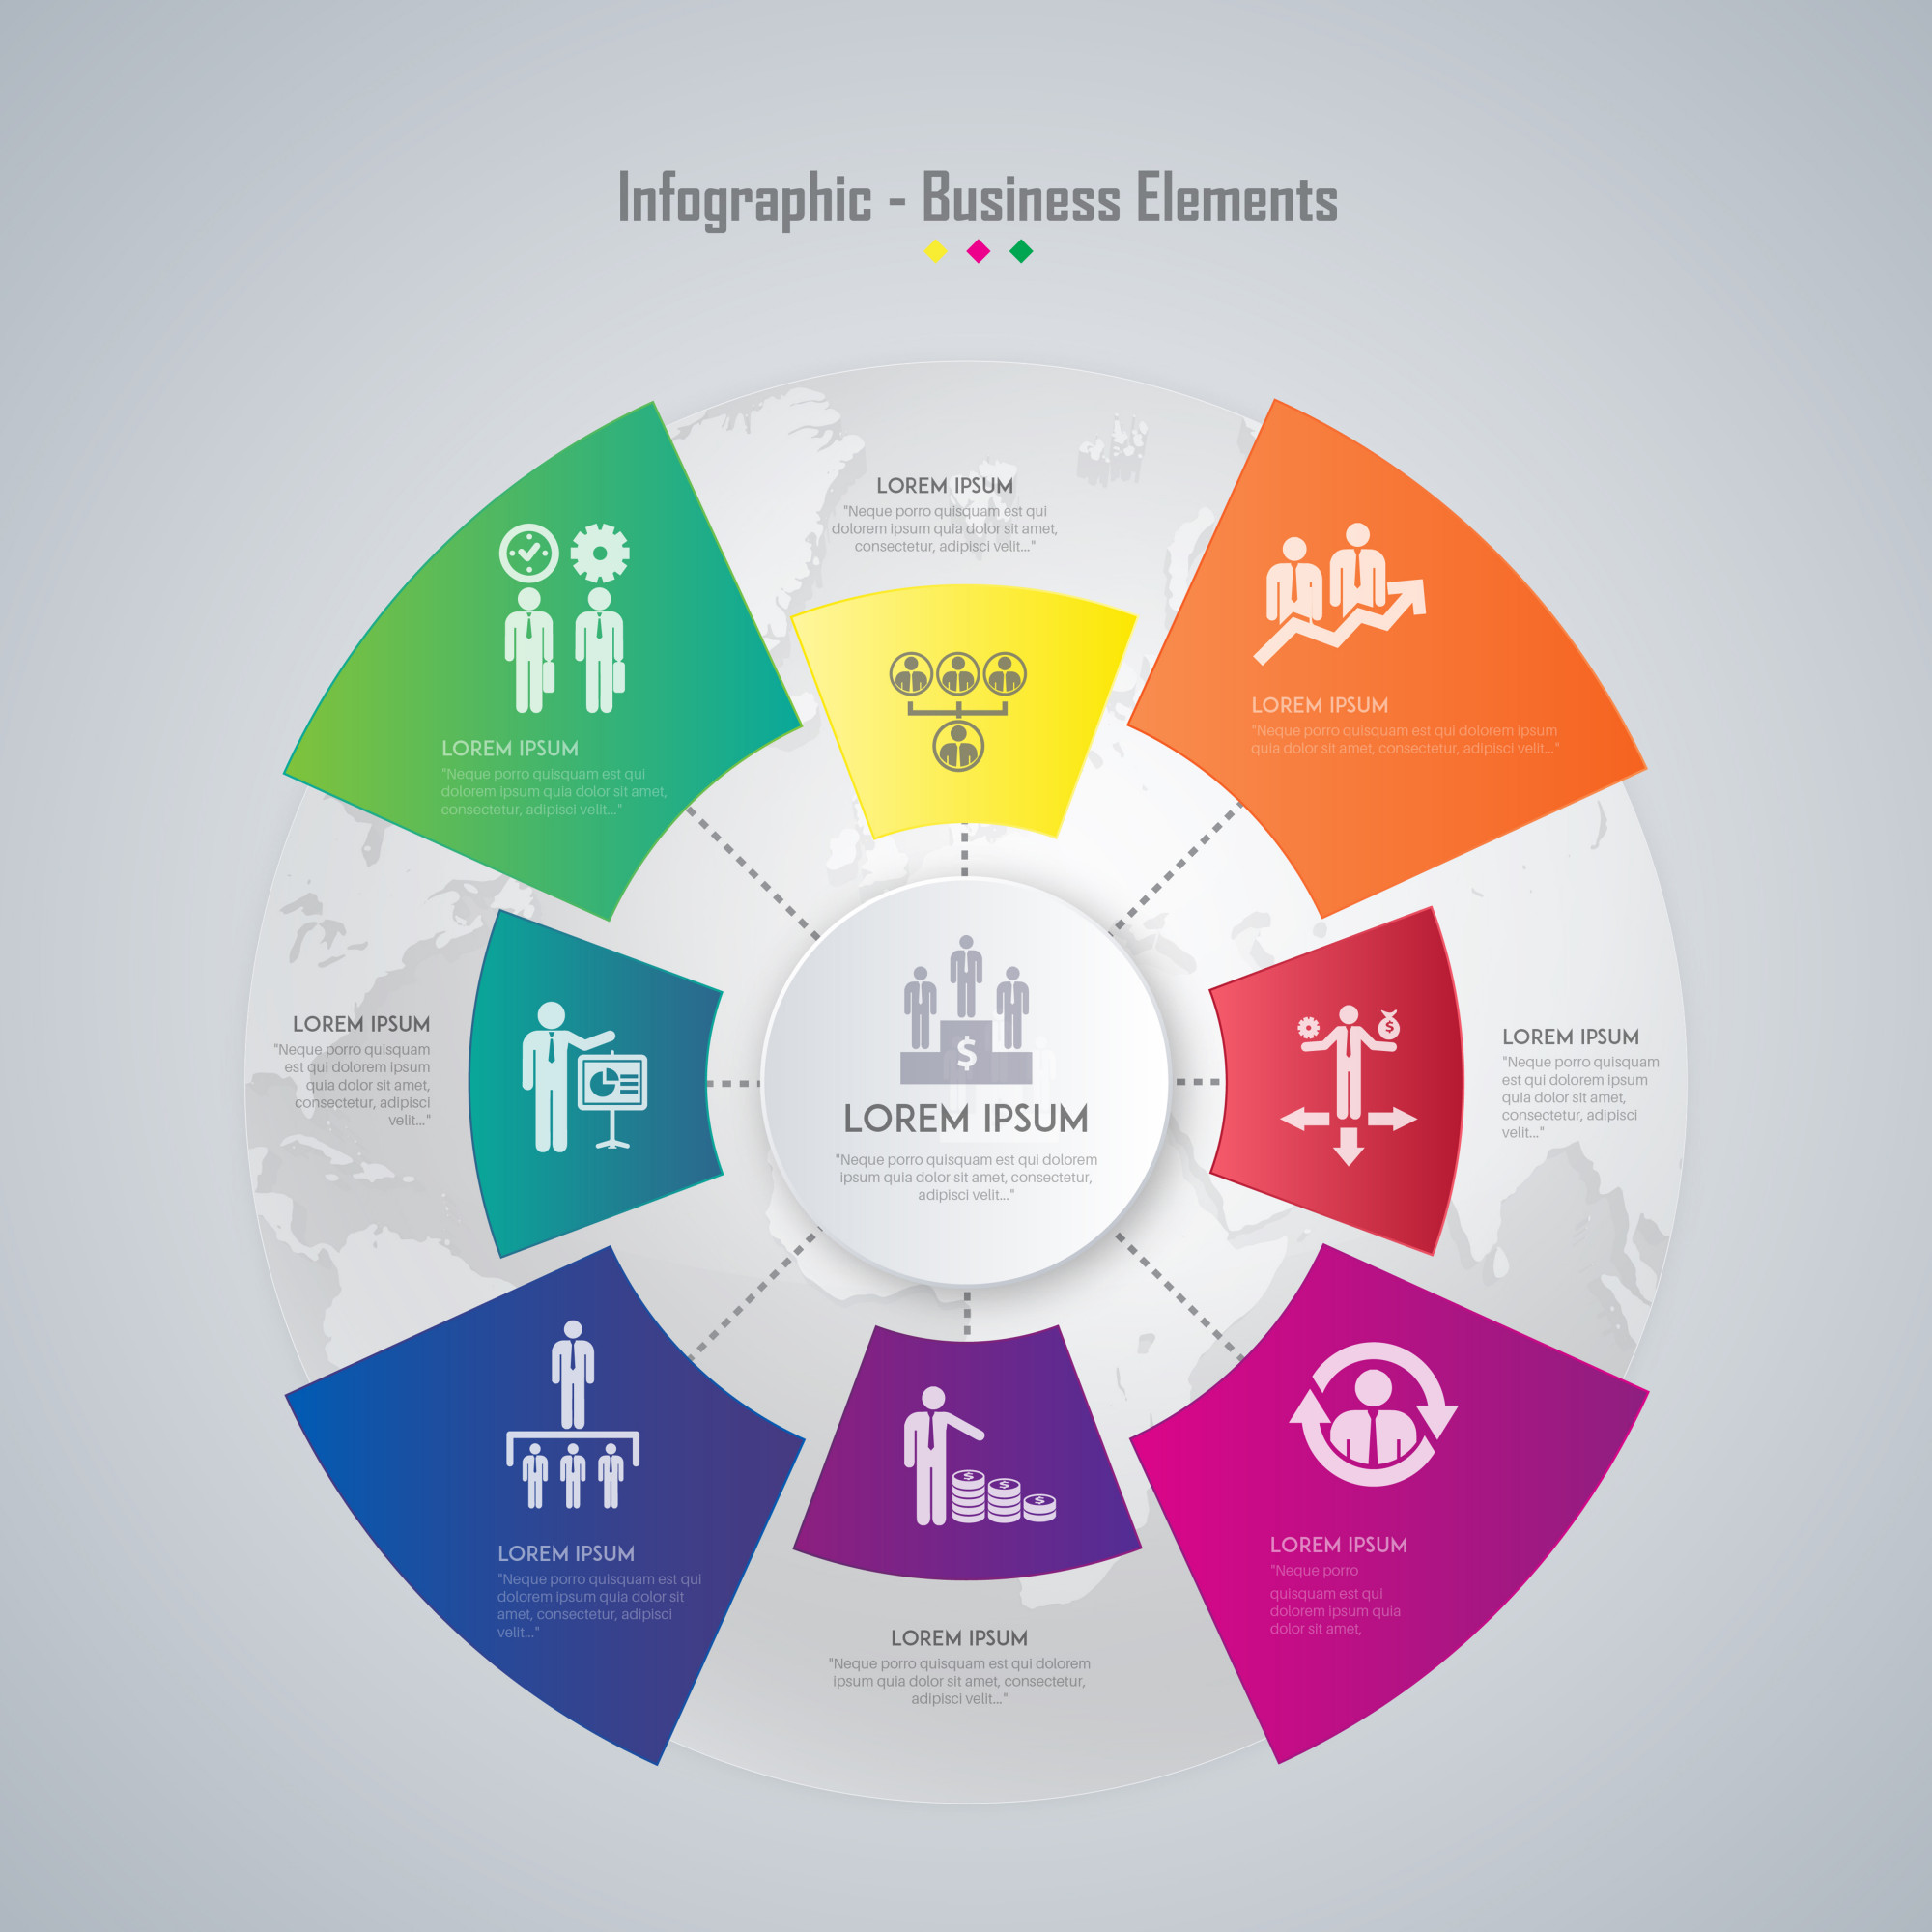 Business elements infographic